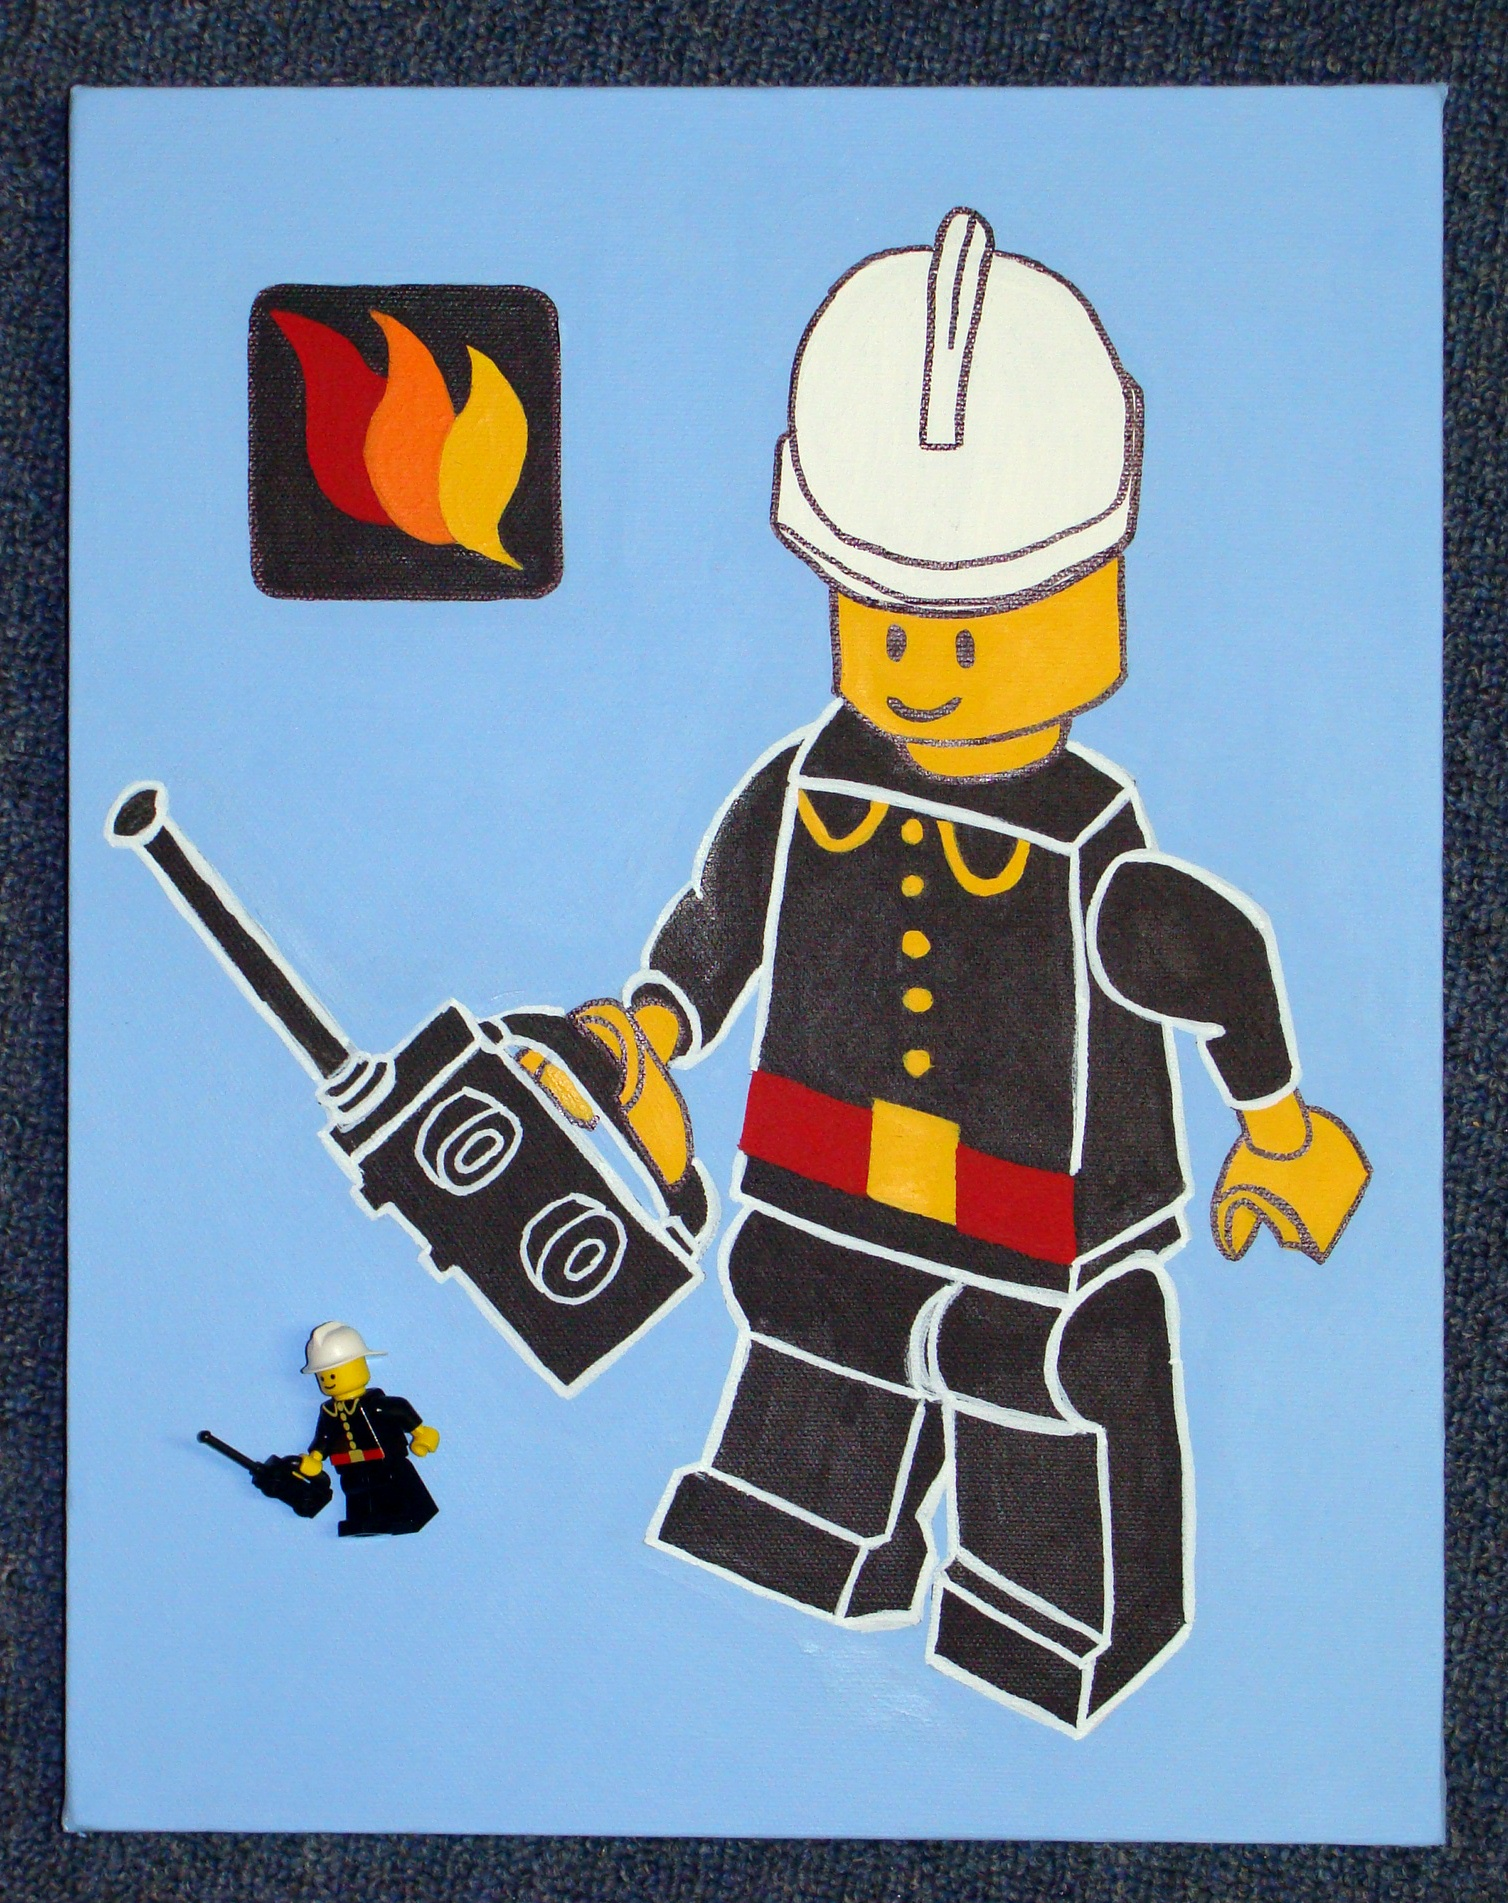 minifig_painting_firefighter_with_minifig.jpg